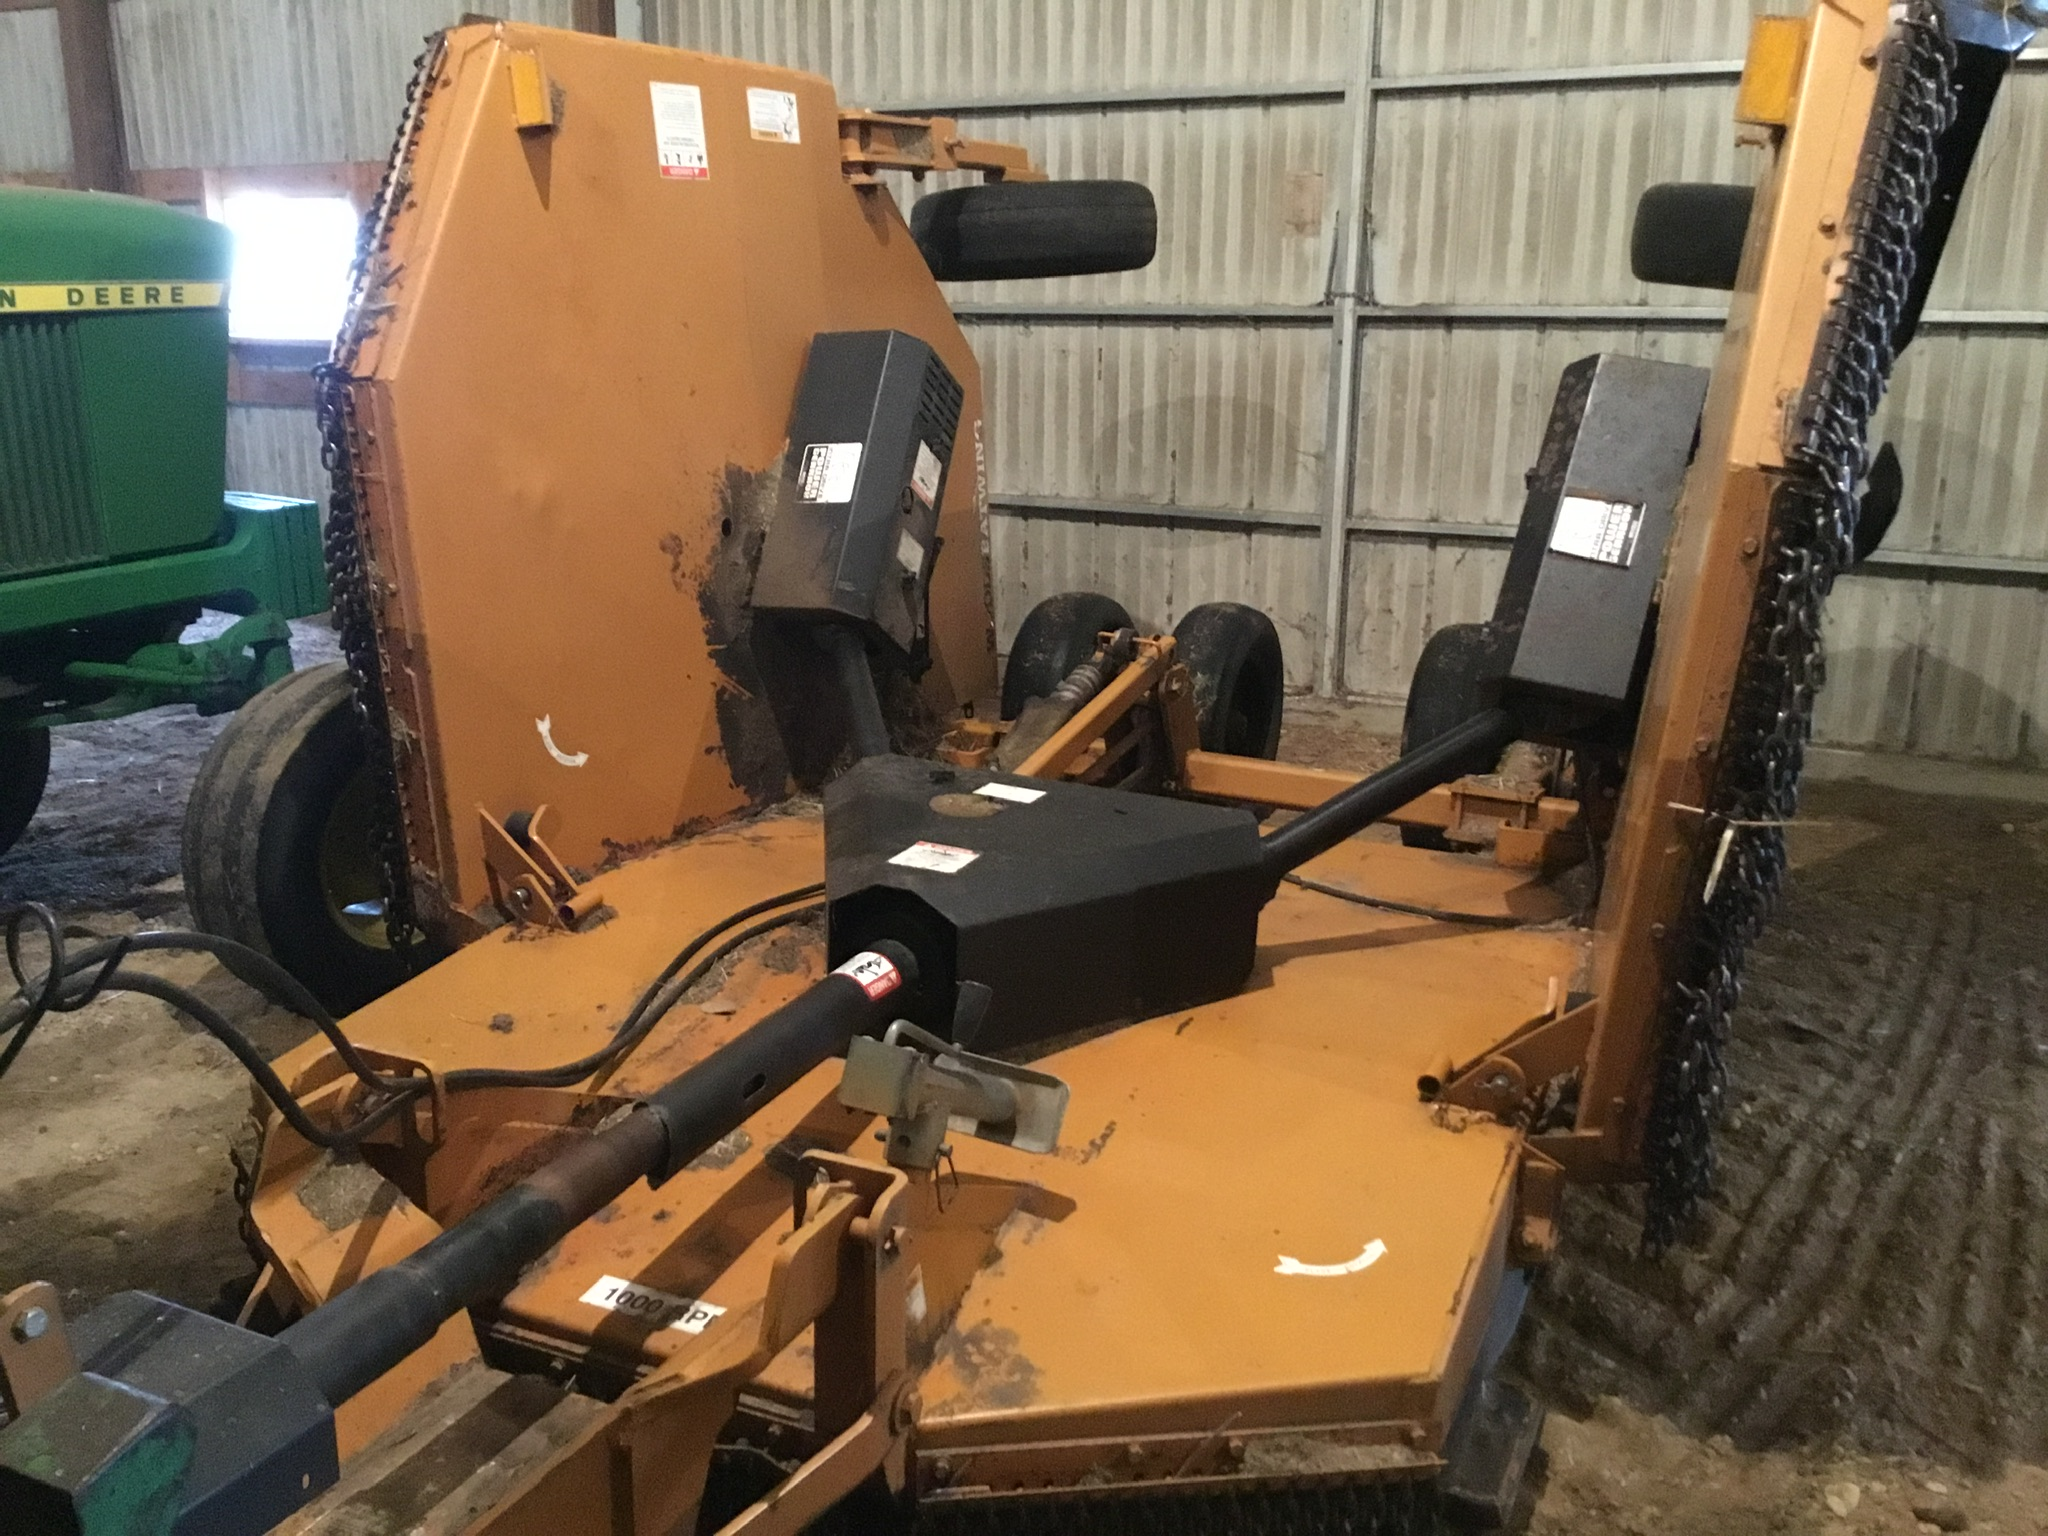 Woods 9309 Bat Wing Mower, 15Ft., 1,000 PTO, Chains, 6 Aircraft Tires, Serial #745029 - Image 5 of 9